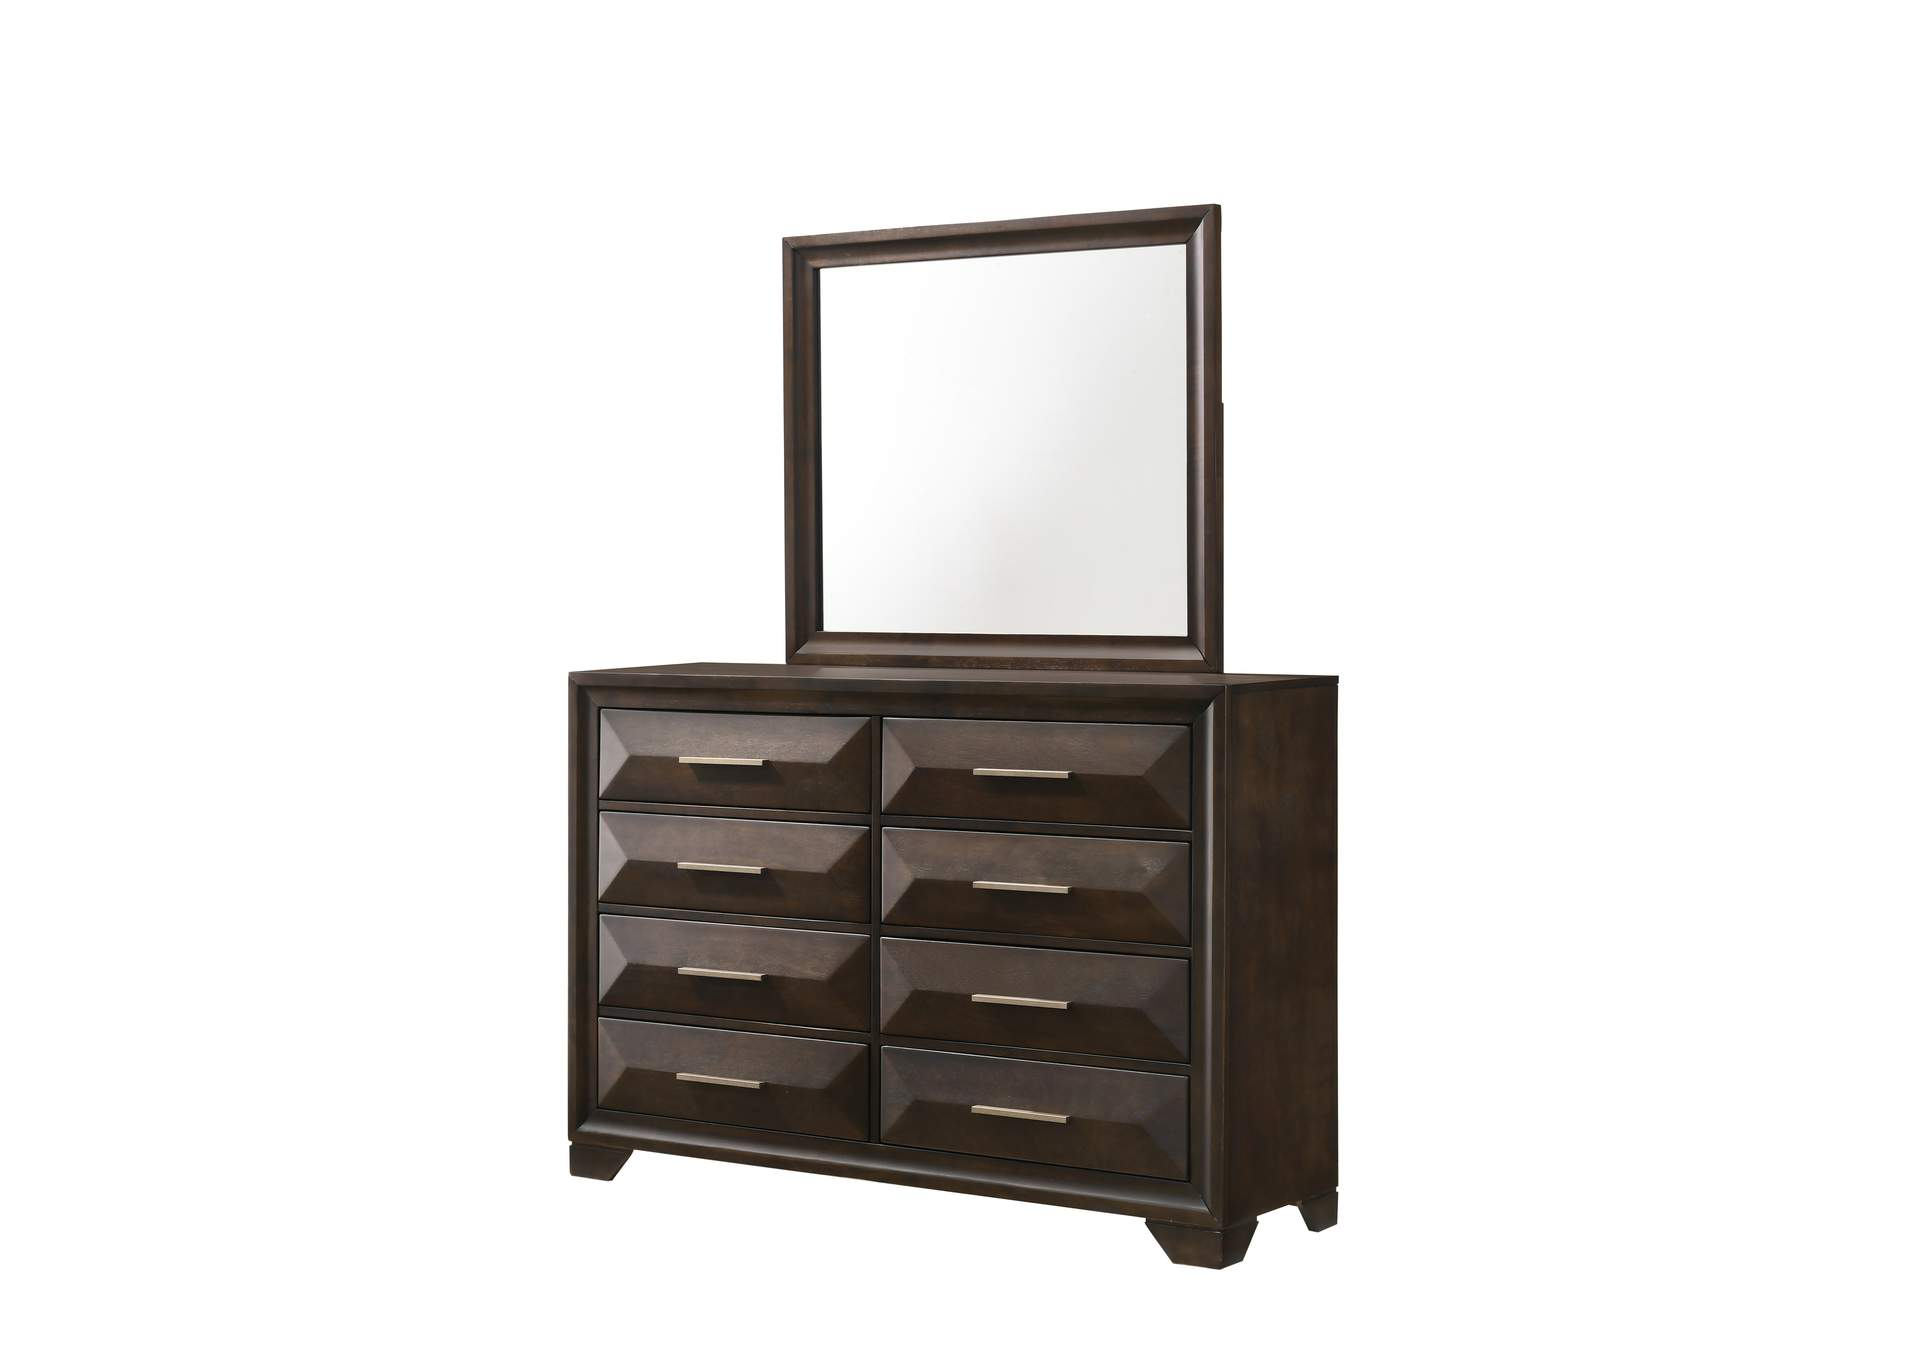 1035 Anthem Dresser,Lane Furniture